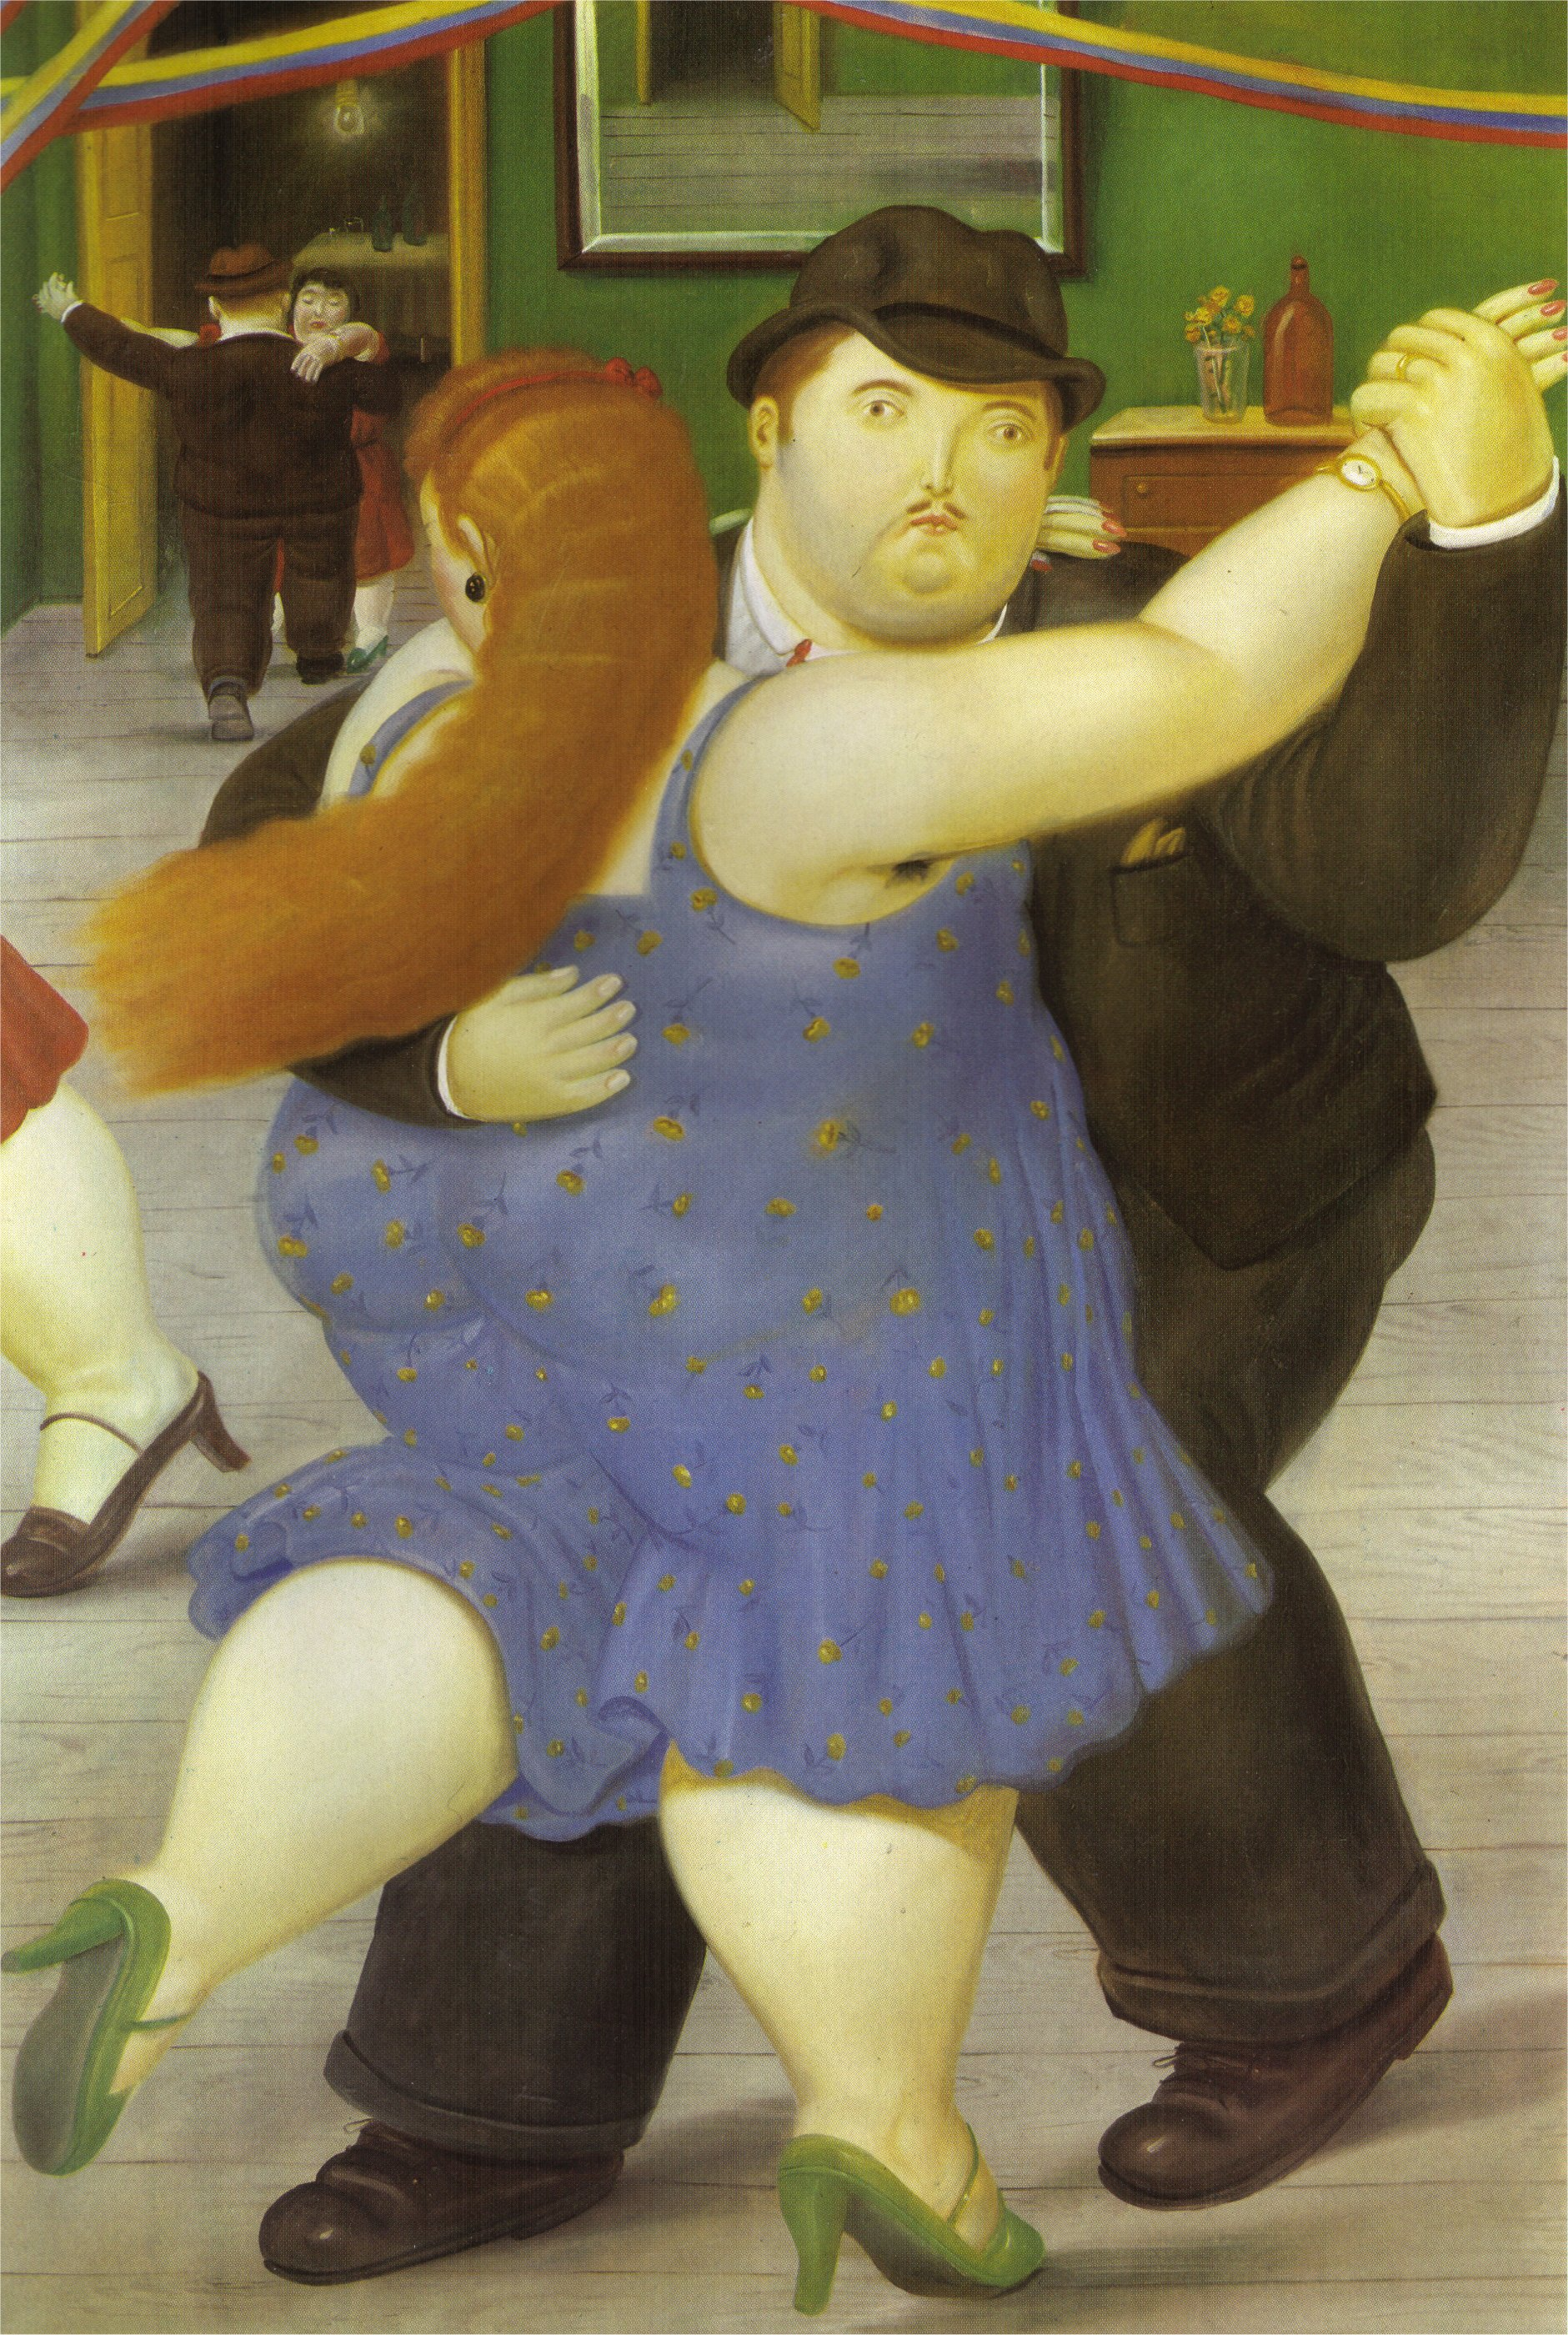 Populaire The Dancers, 1987 - Fernando Botero - WikiArt.org GU85